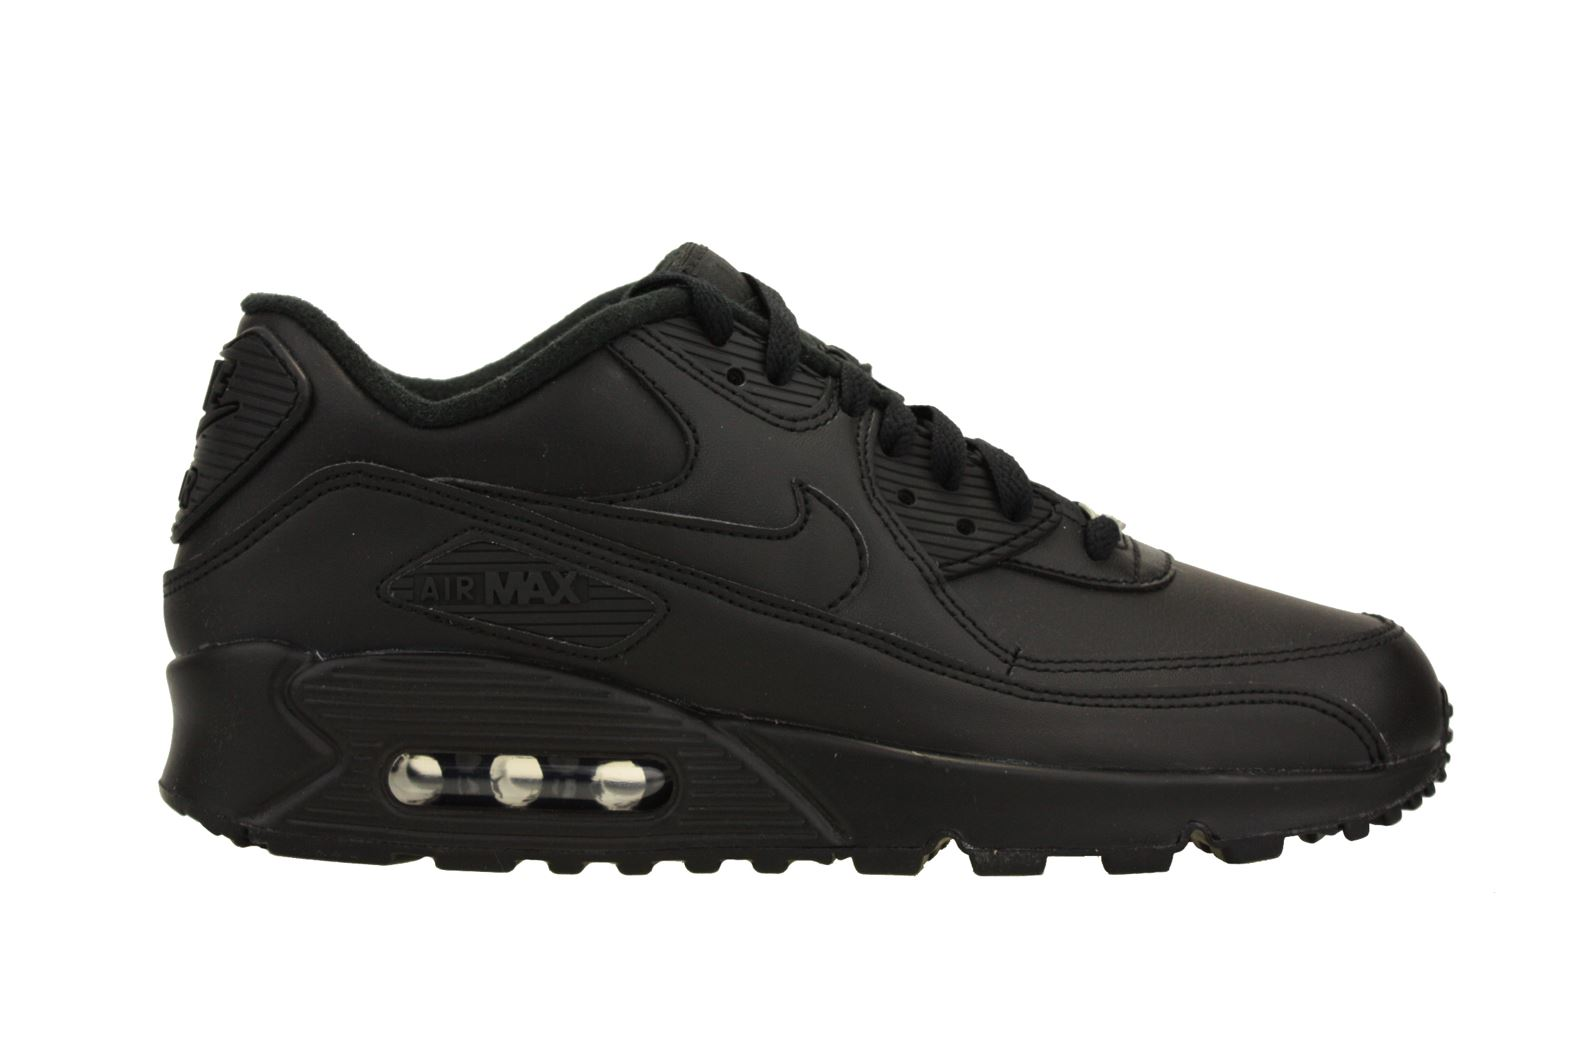 Nike Nike Mens Air Max 90 Leather Running Shoes Black